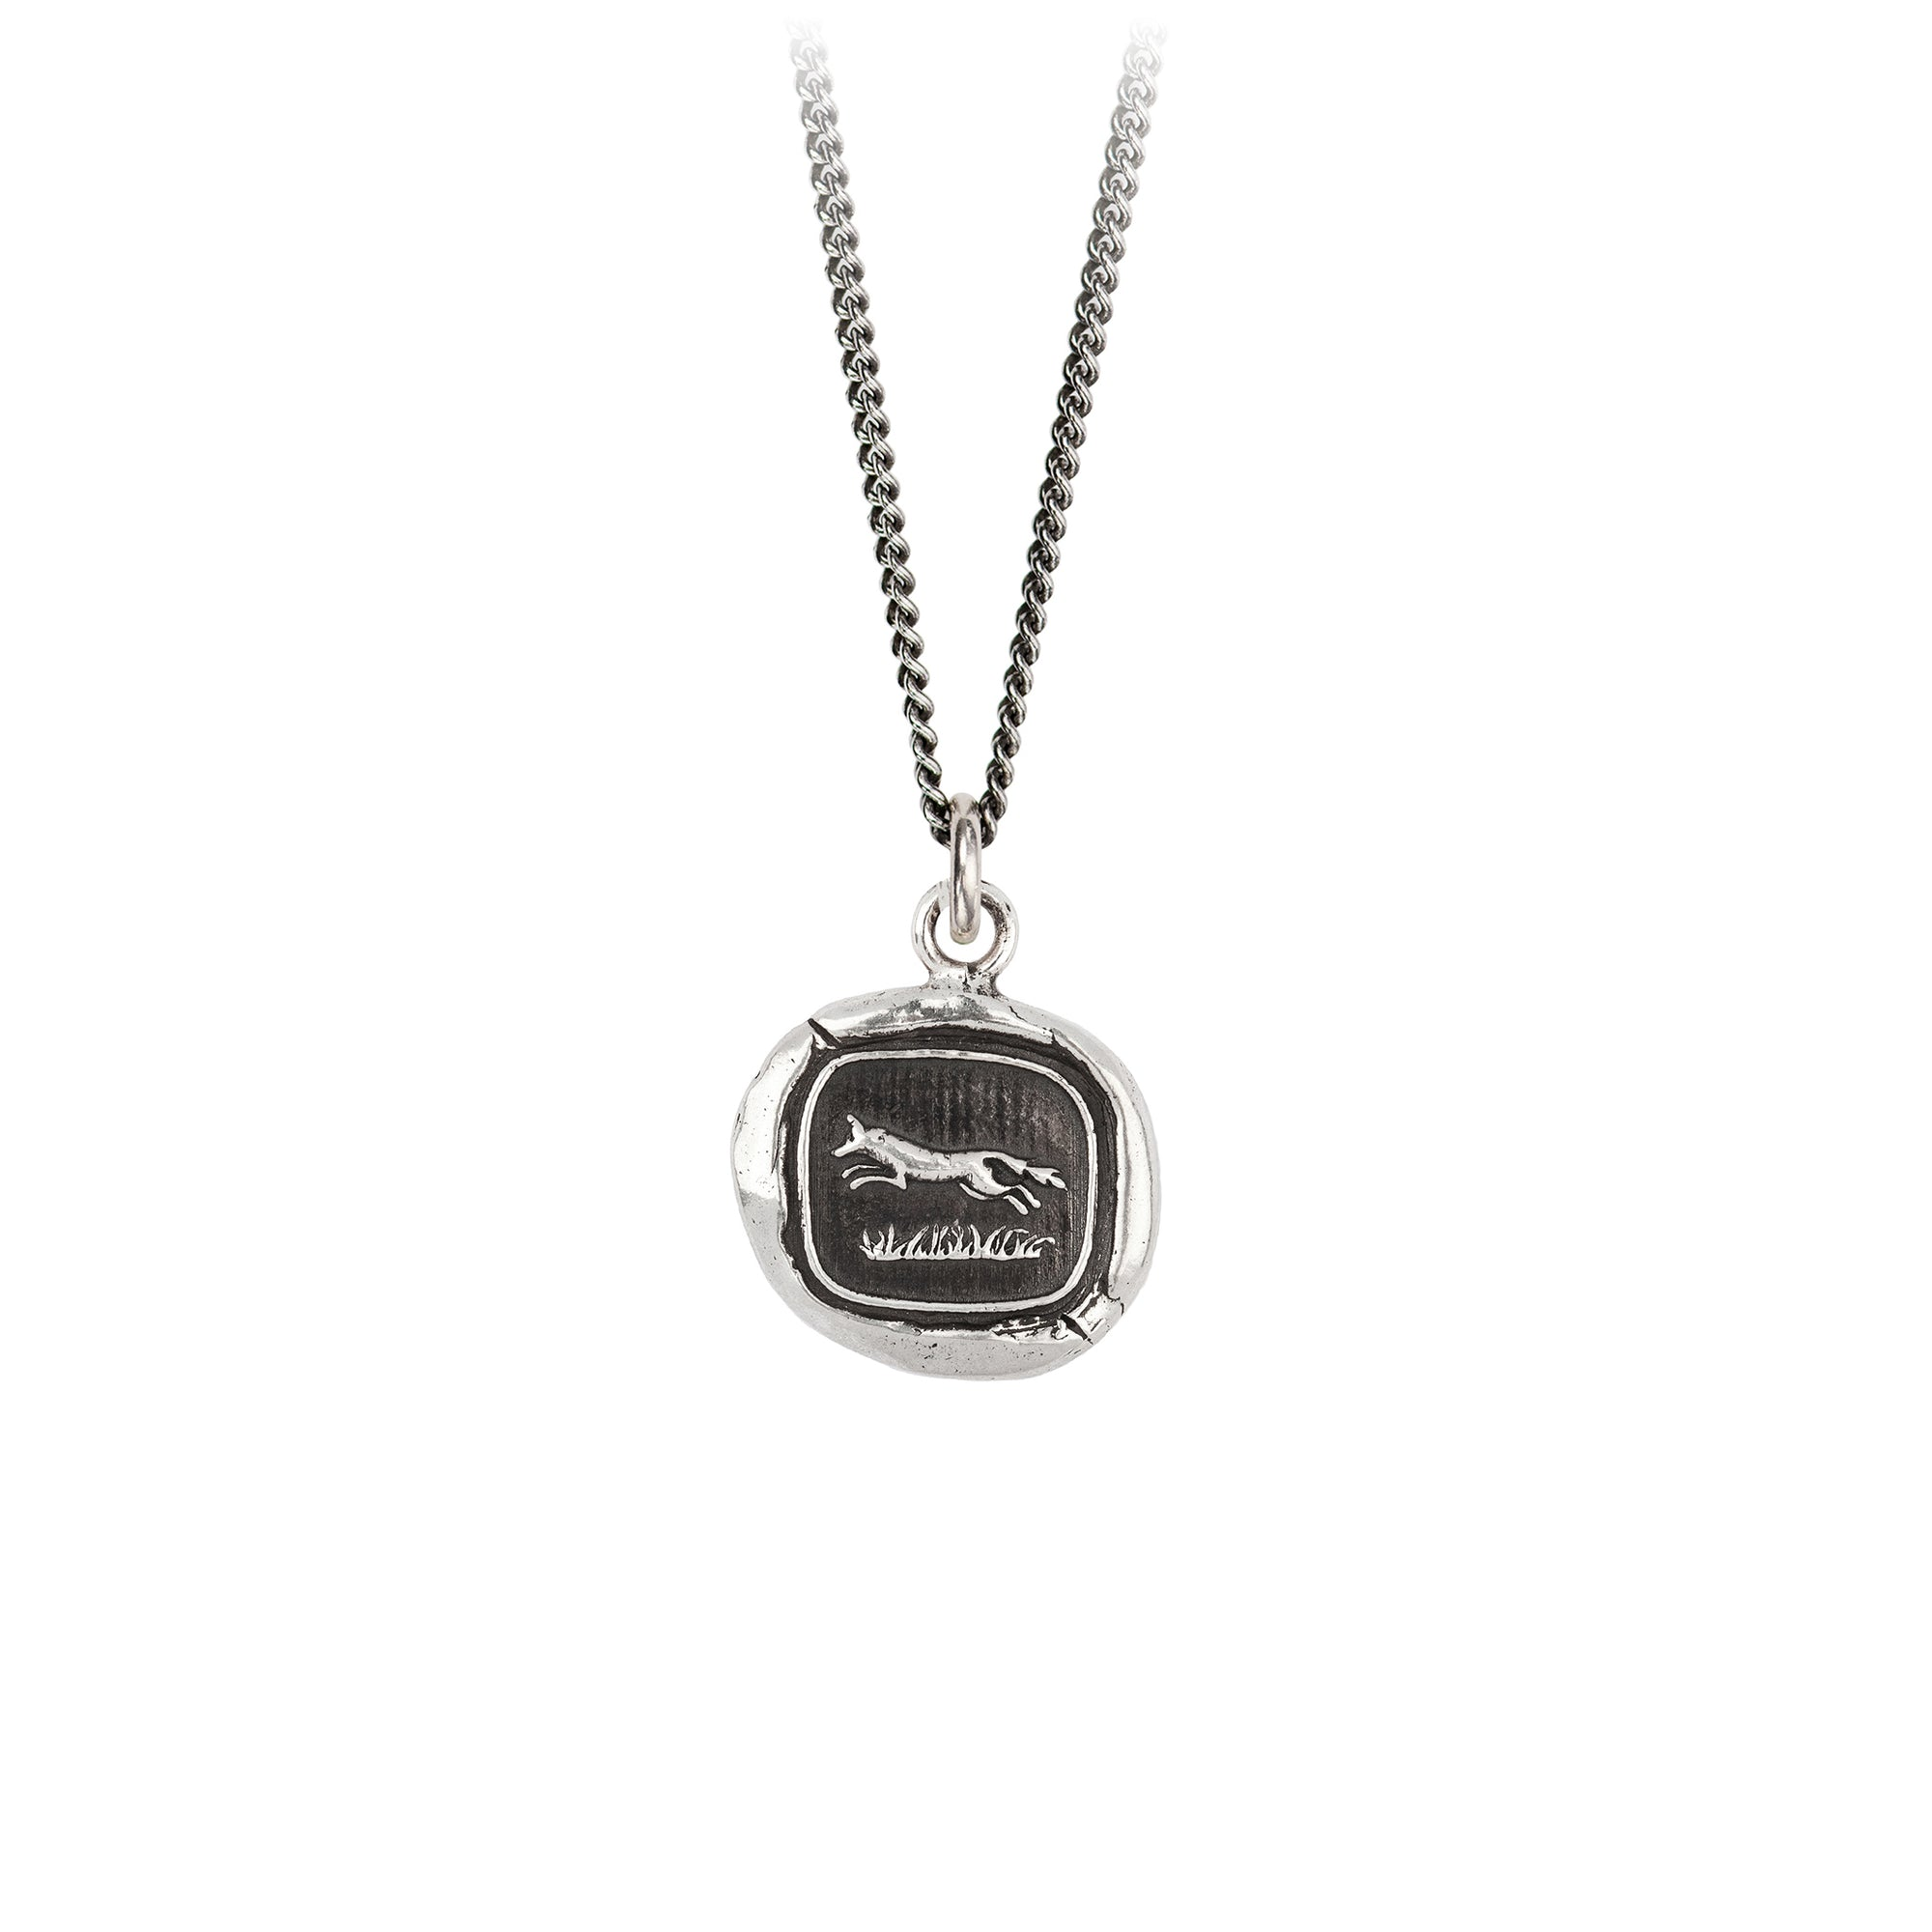 Pyrrha Pathfinder Talisman Necklace Fine Curb Chain Silver